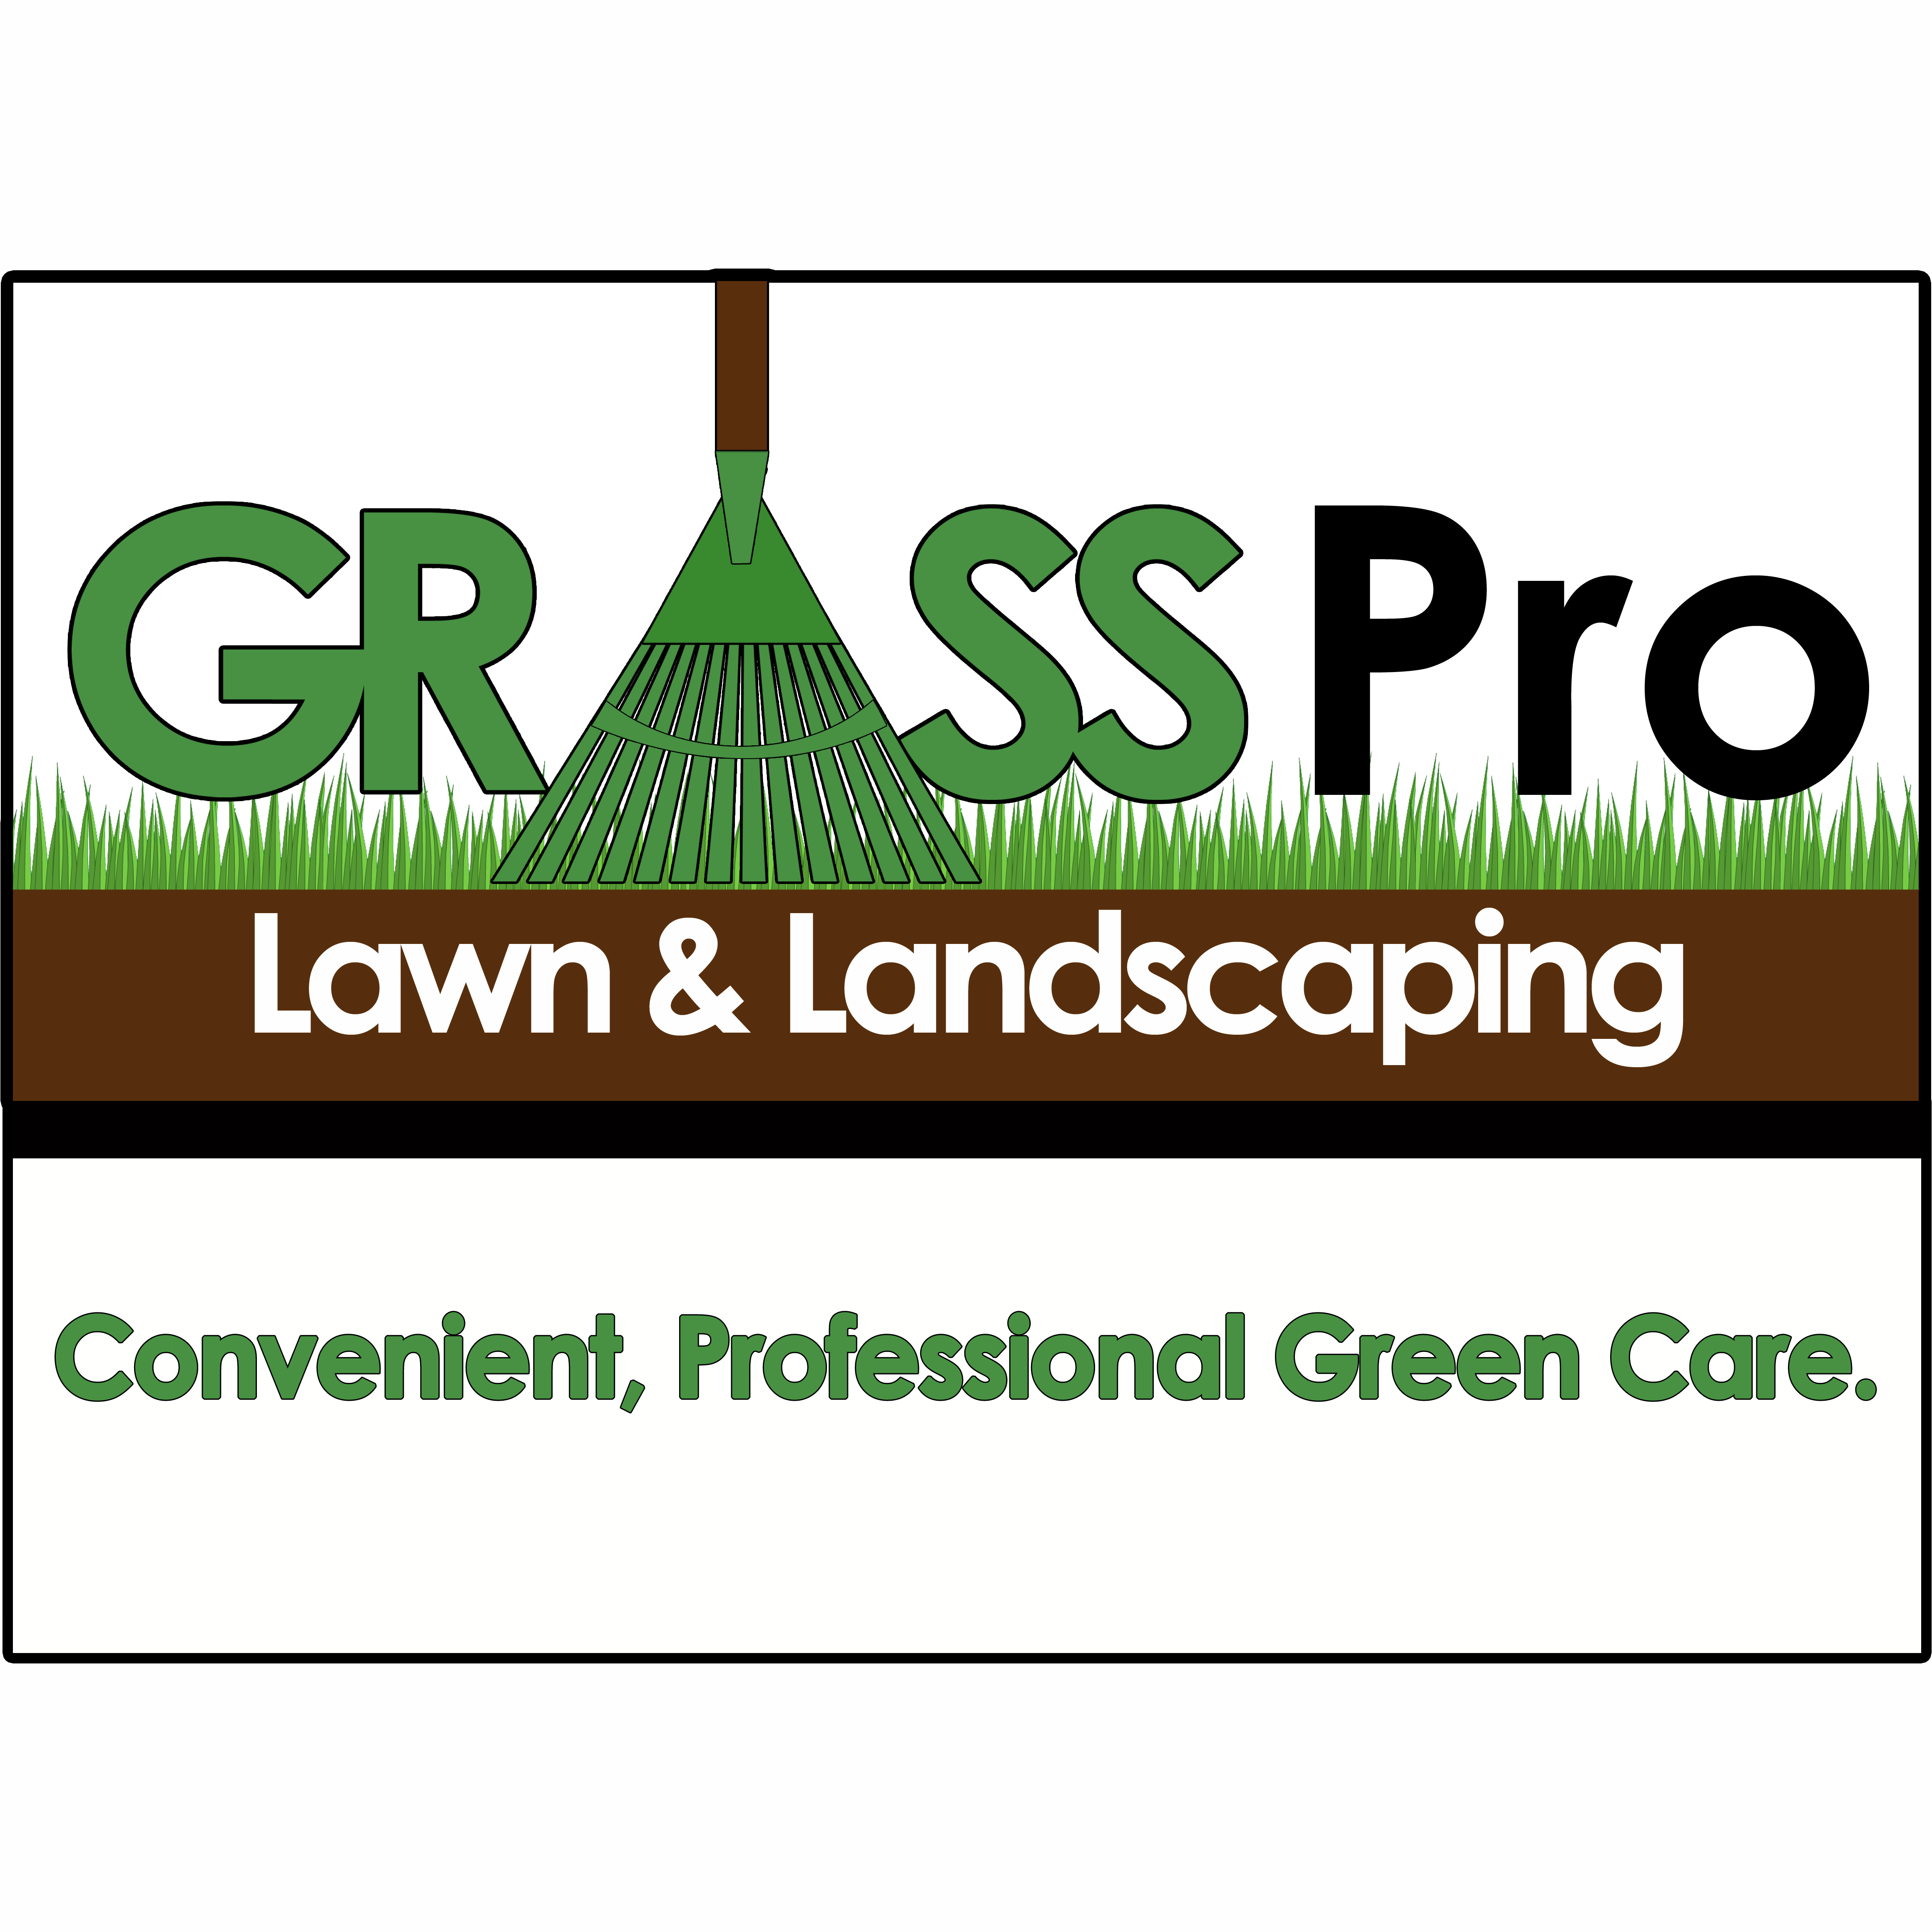 Grass Pro Lawn & Landscaping